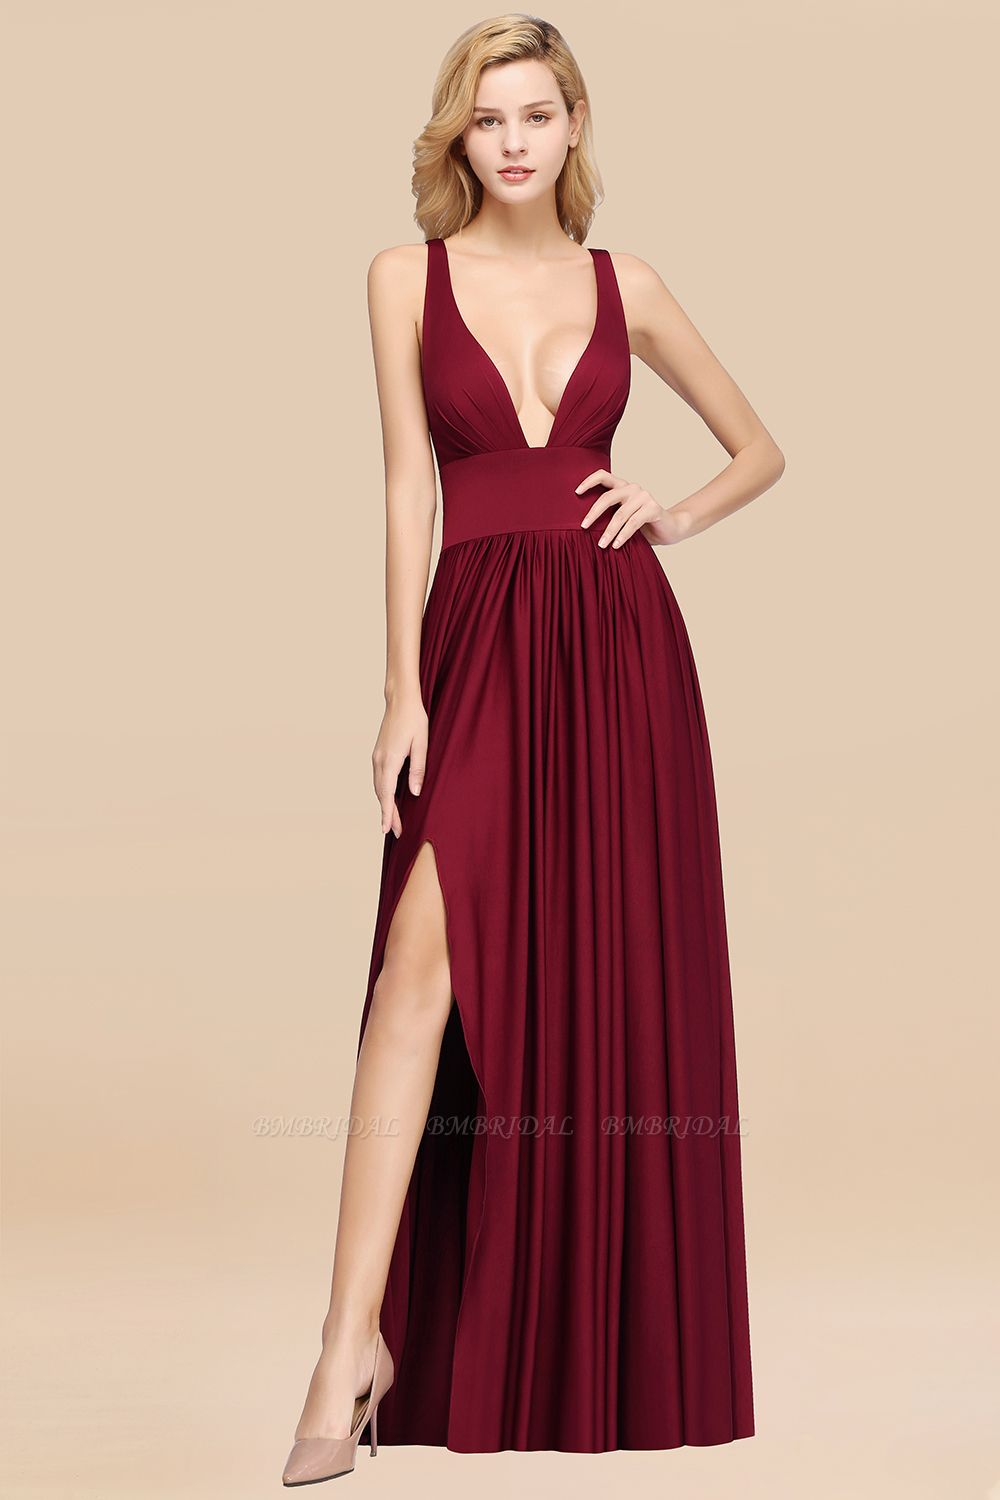 BMbridal Sexy Deep V-Neck Sleeveless Bridesmaid Dress Burgundy Chiffon Wedding Party Dress